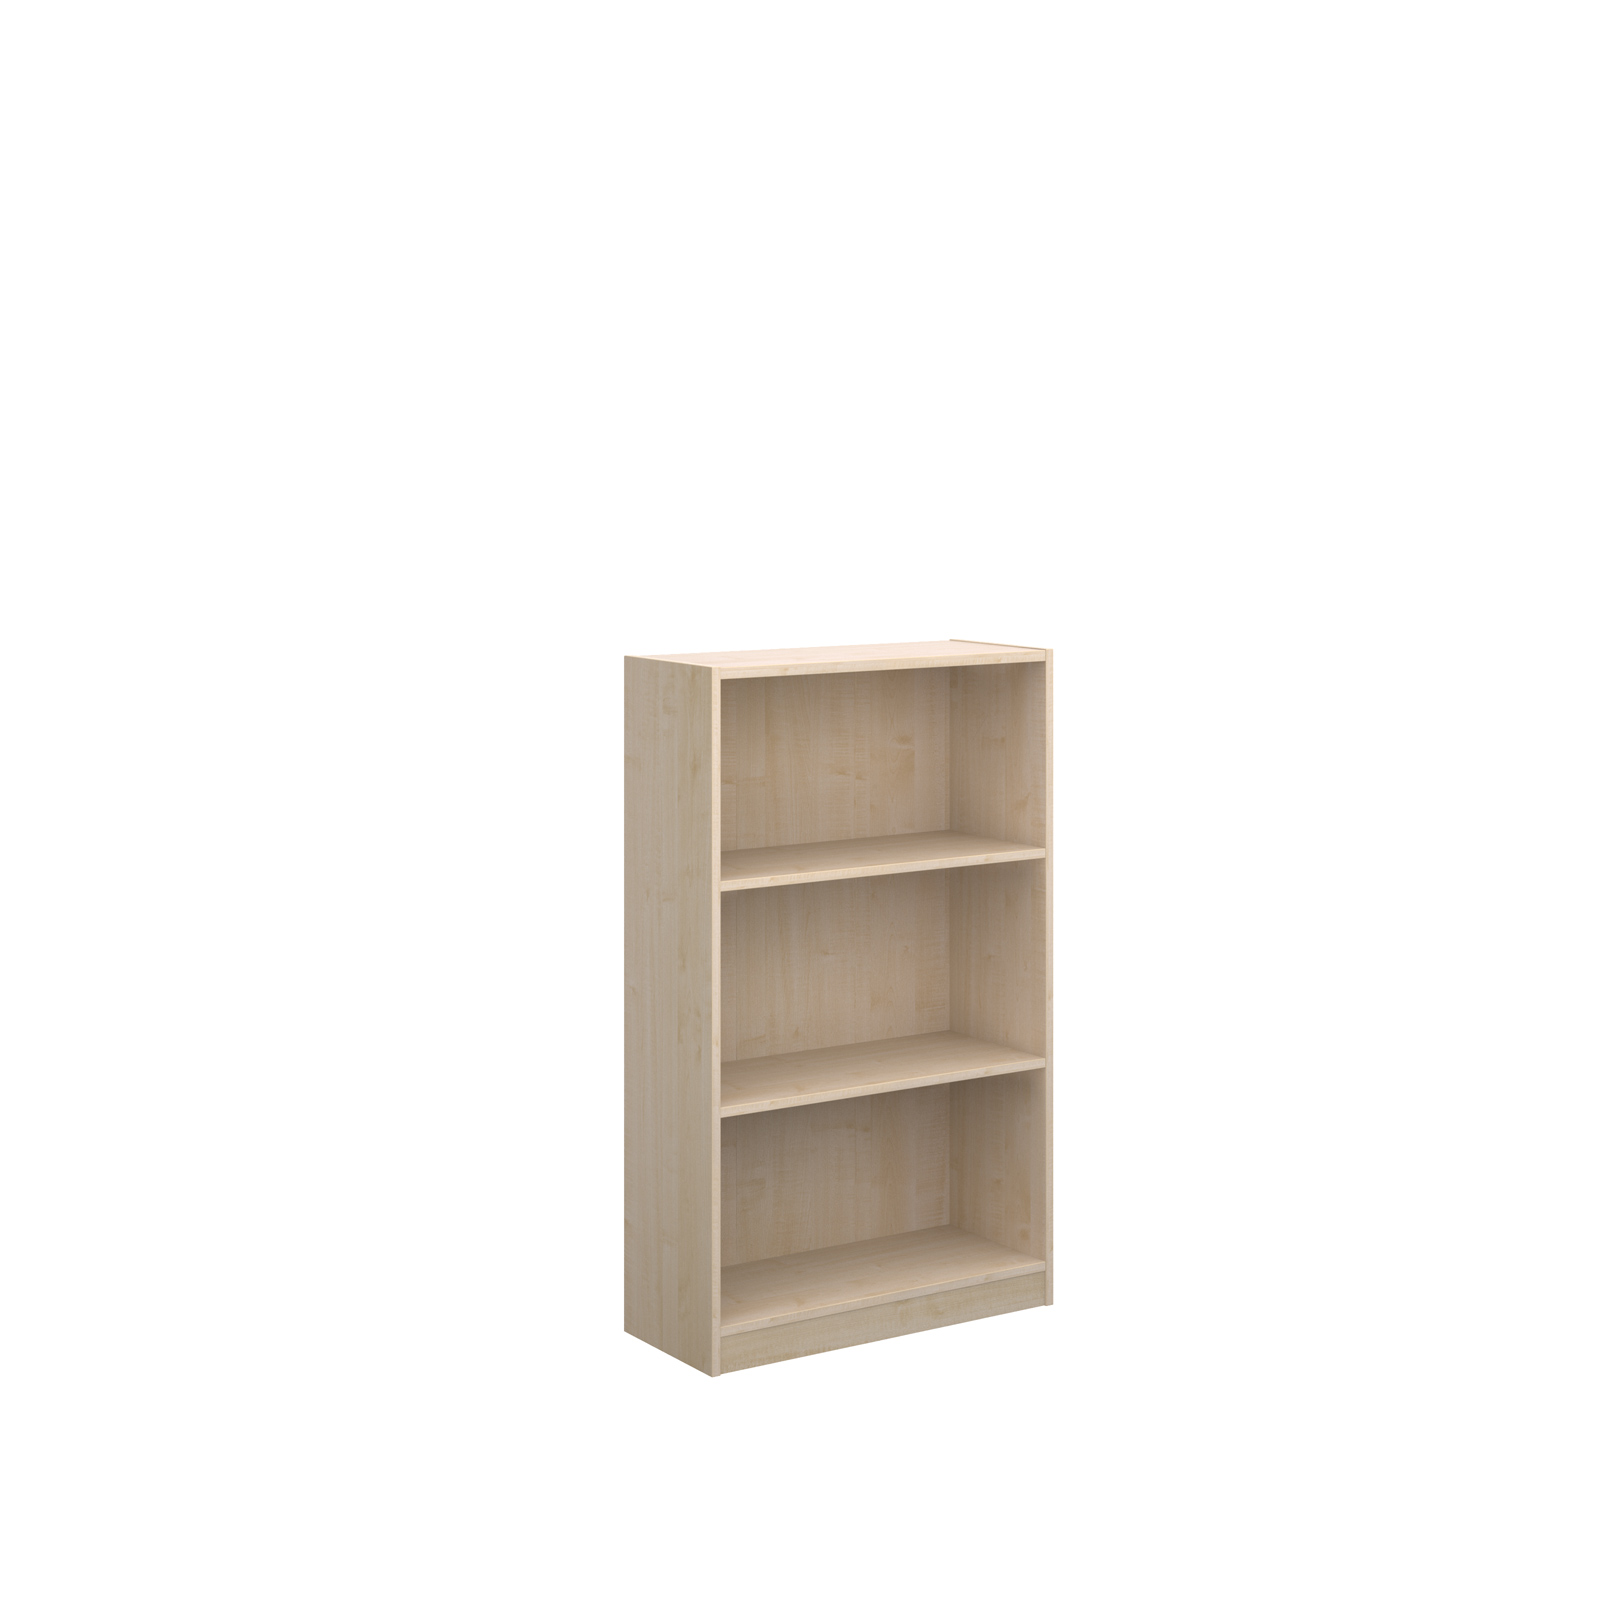 Economy bookcase 1236mm high with 2 shelves - maple